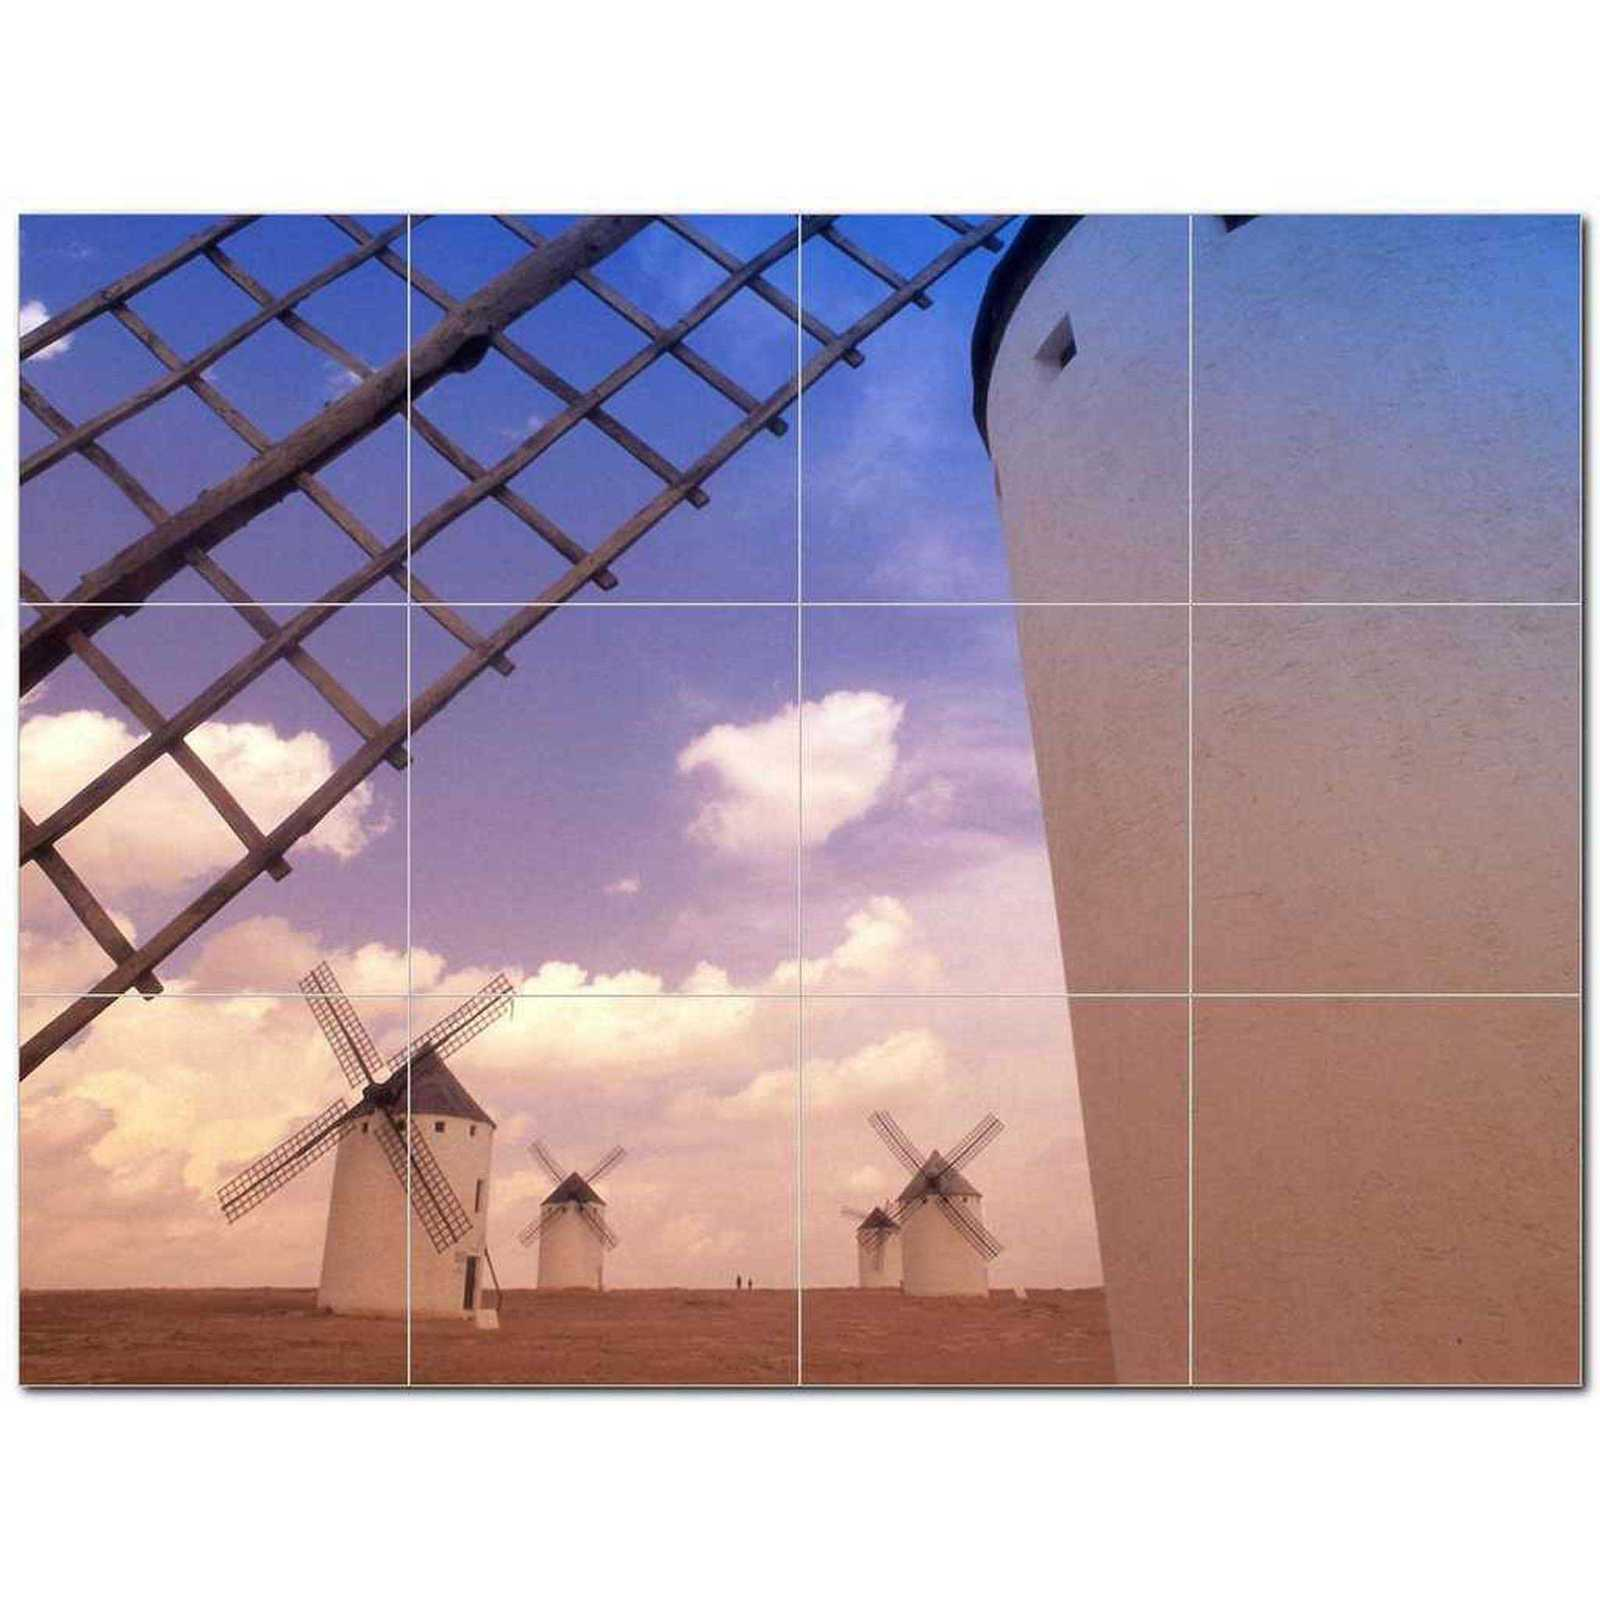 Primary image for Windmill Picture Ceramic Tile Mural Kitchen Backsplash Bathroom Shower BAZ406354